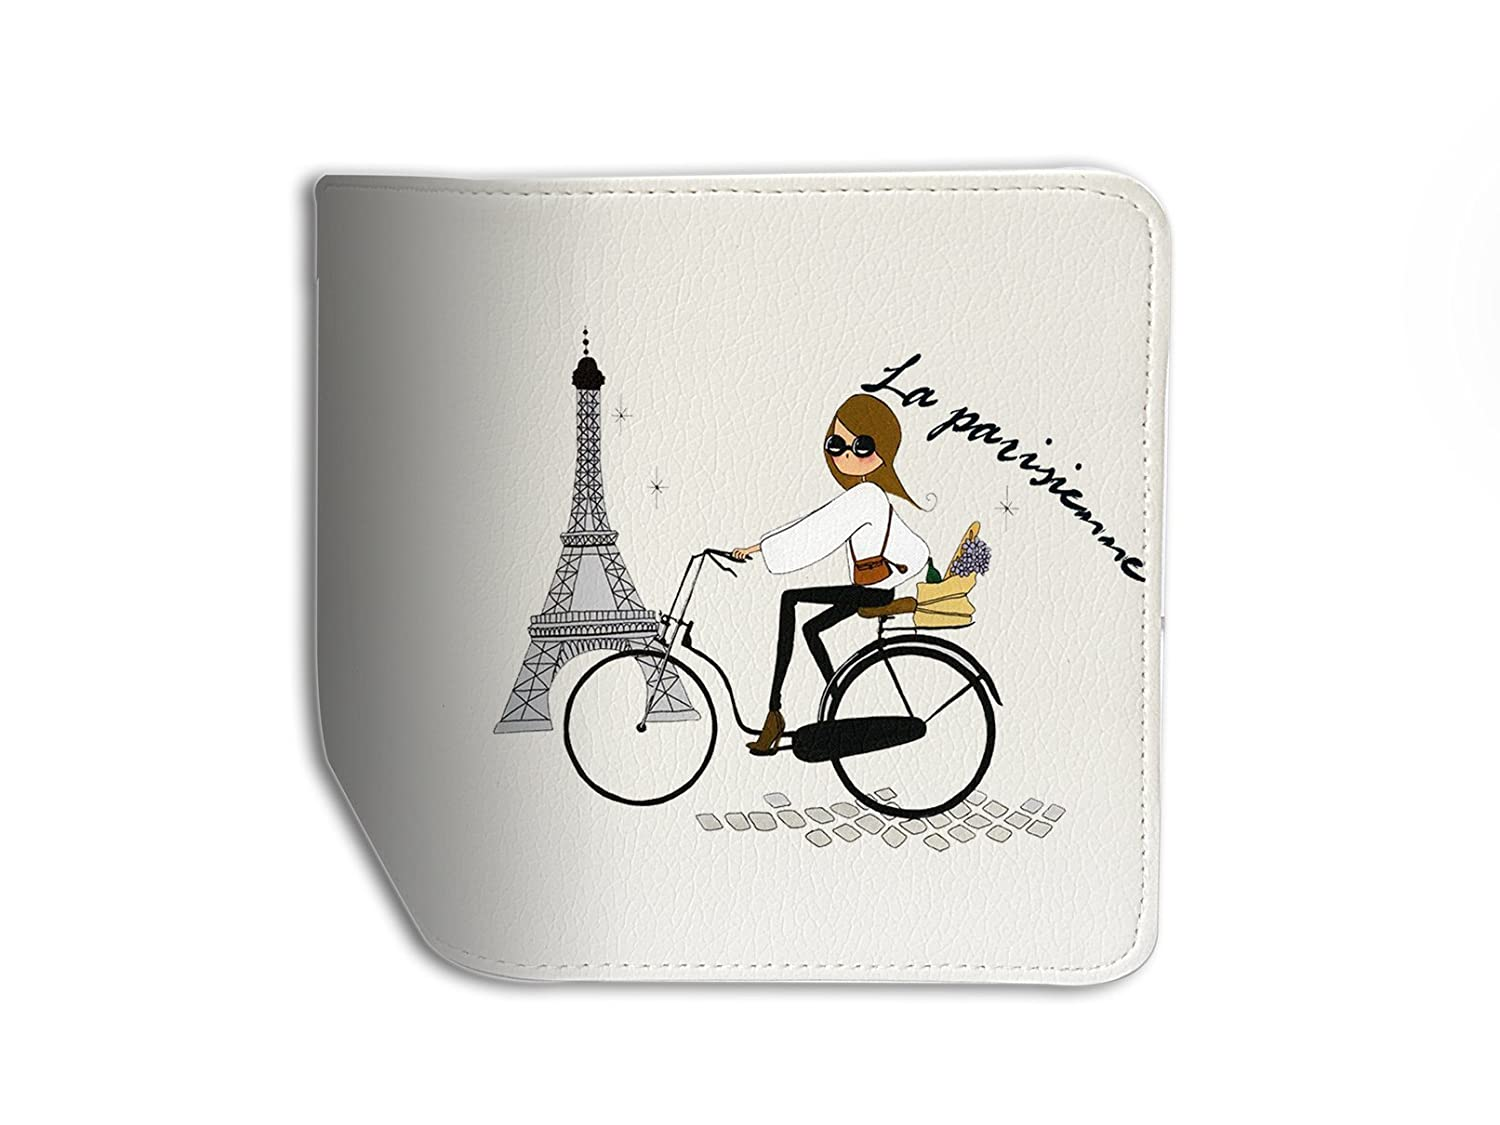 La Parisienne Effel Tower Leather Business ID Passport Holder Protector Cover /_SUPERTRAMPshop